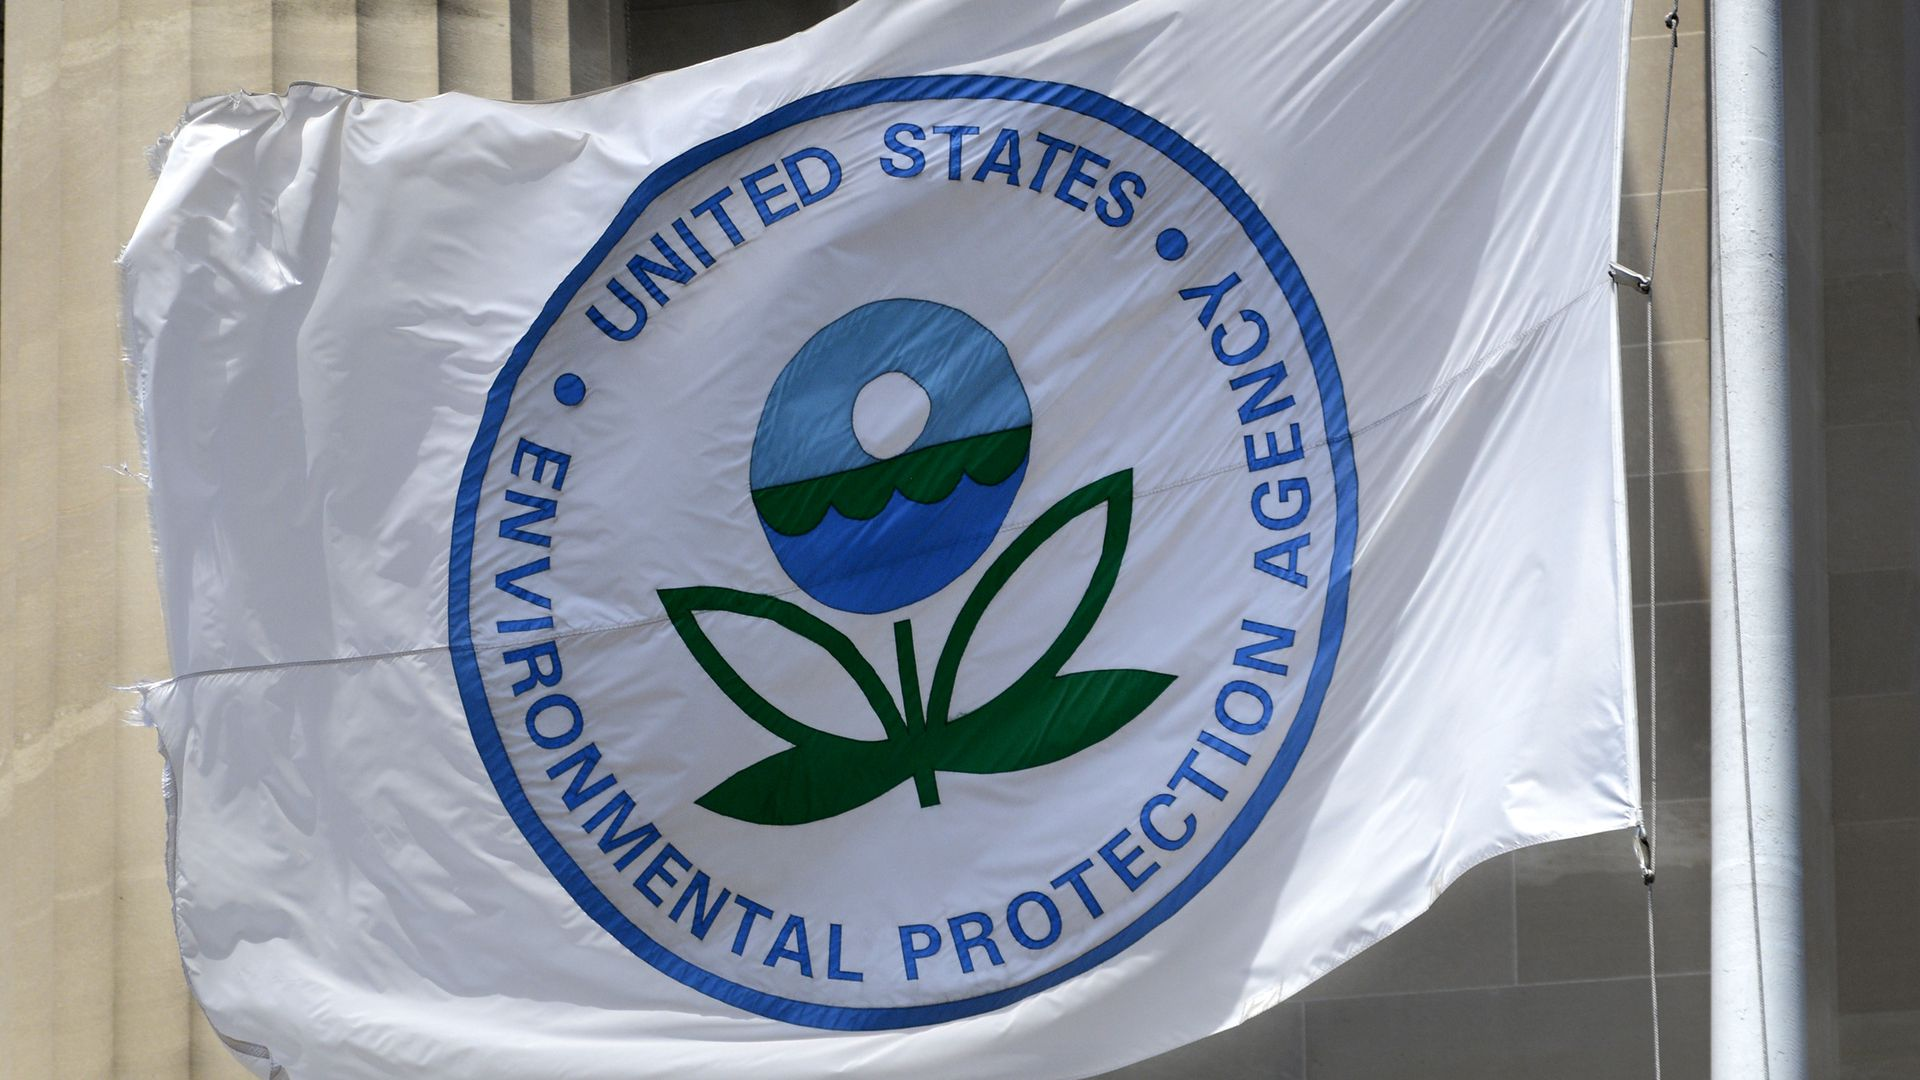 A flag with the EPA logo.